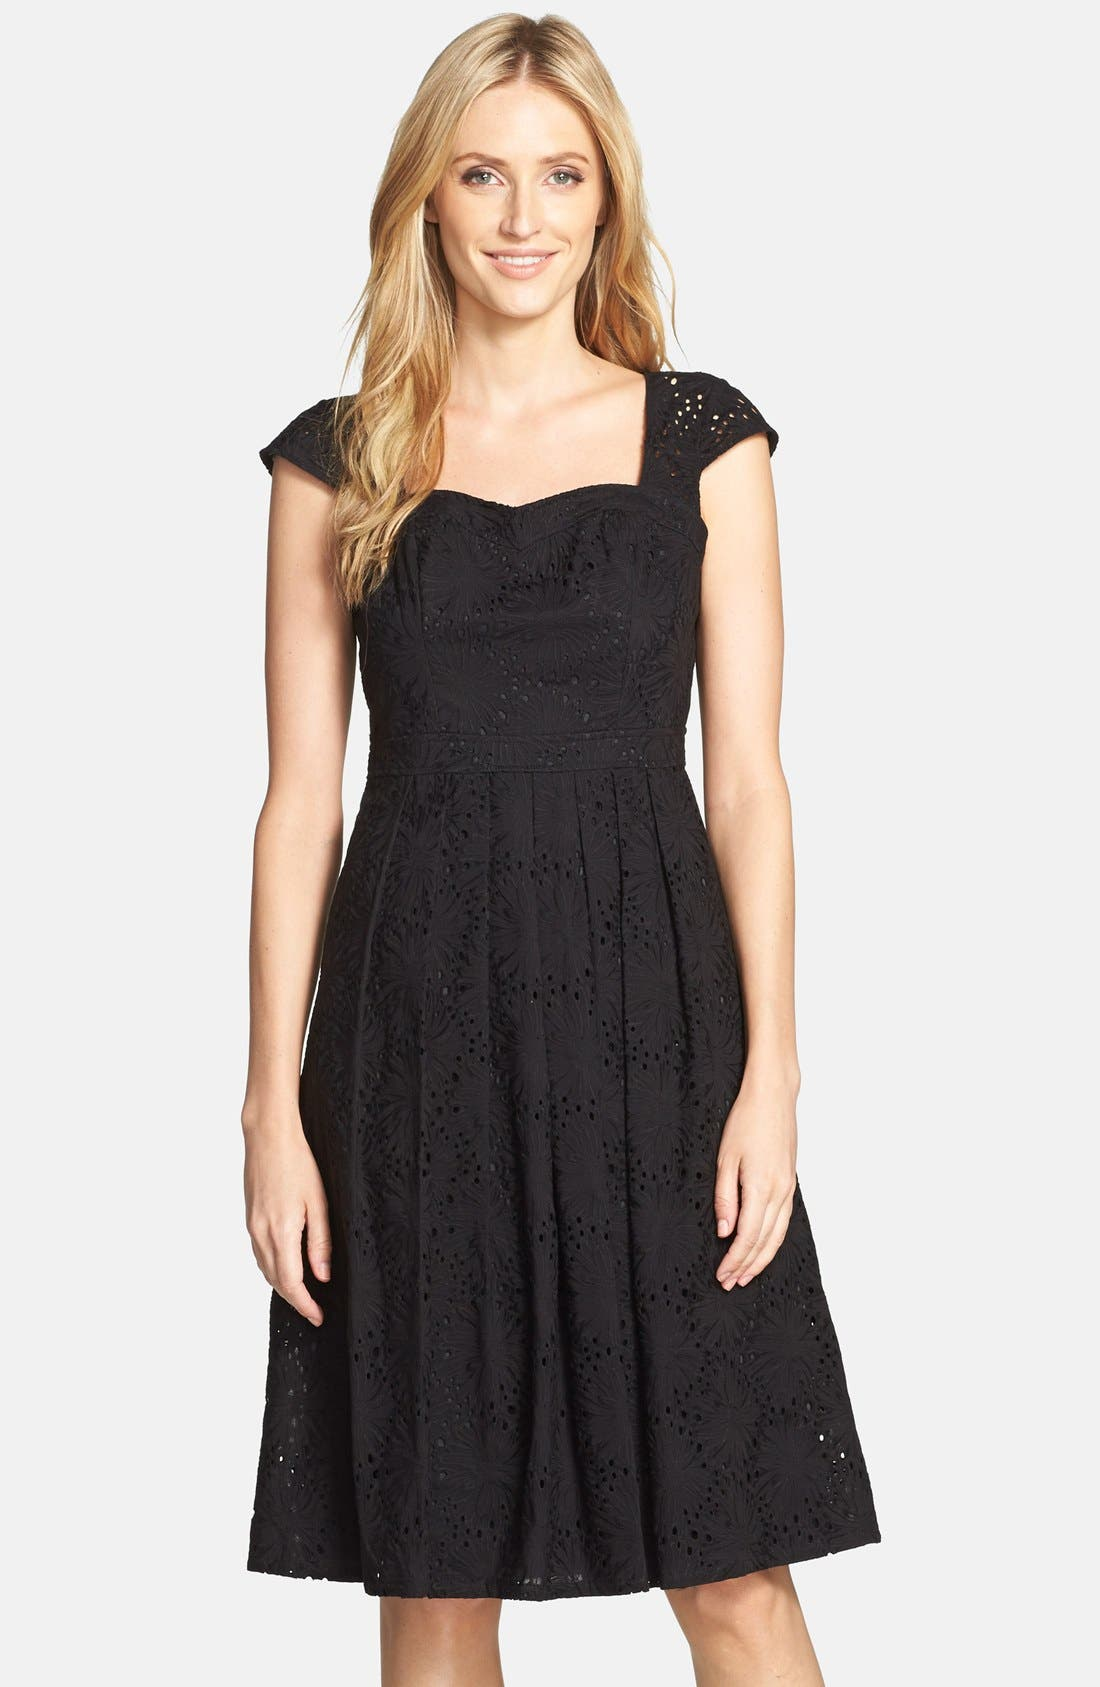 Main Image - Adrianna Papell Eyelet Fit & Flare Dress